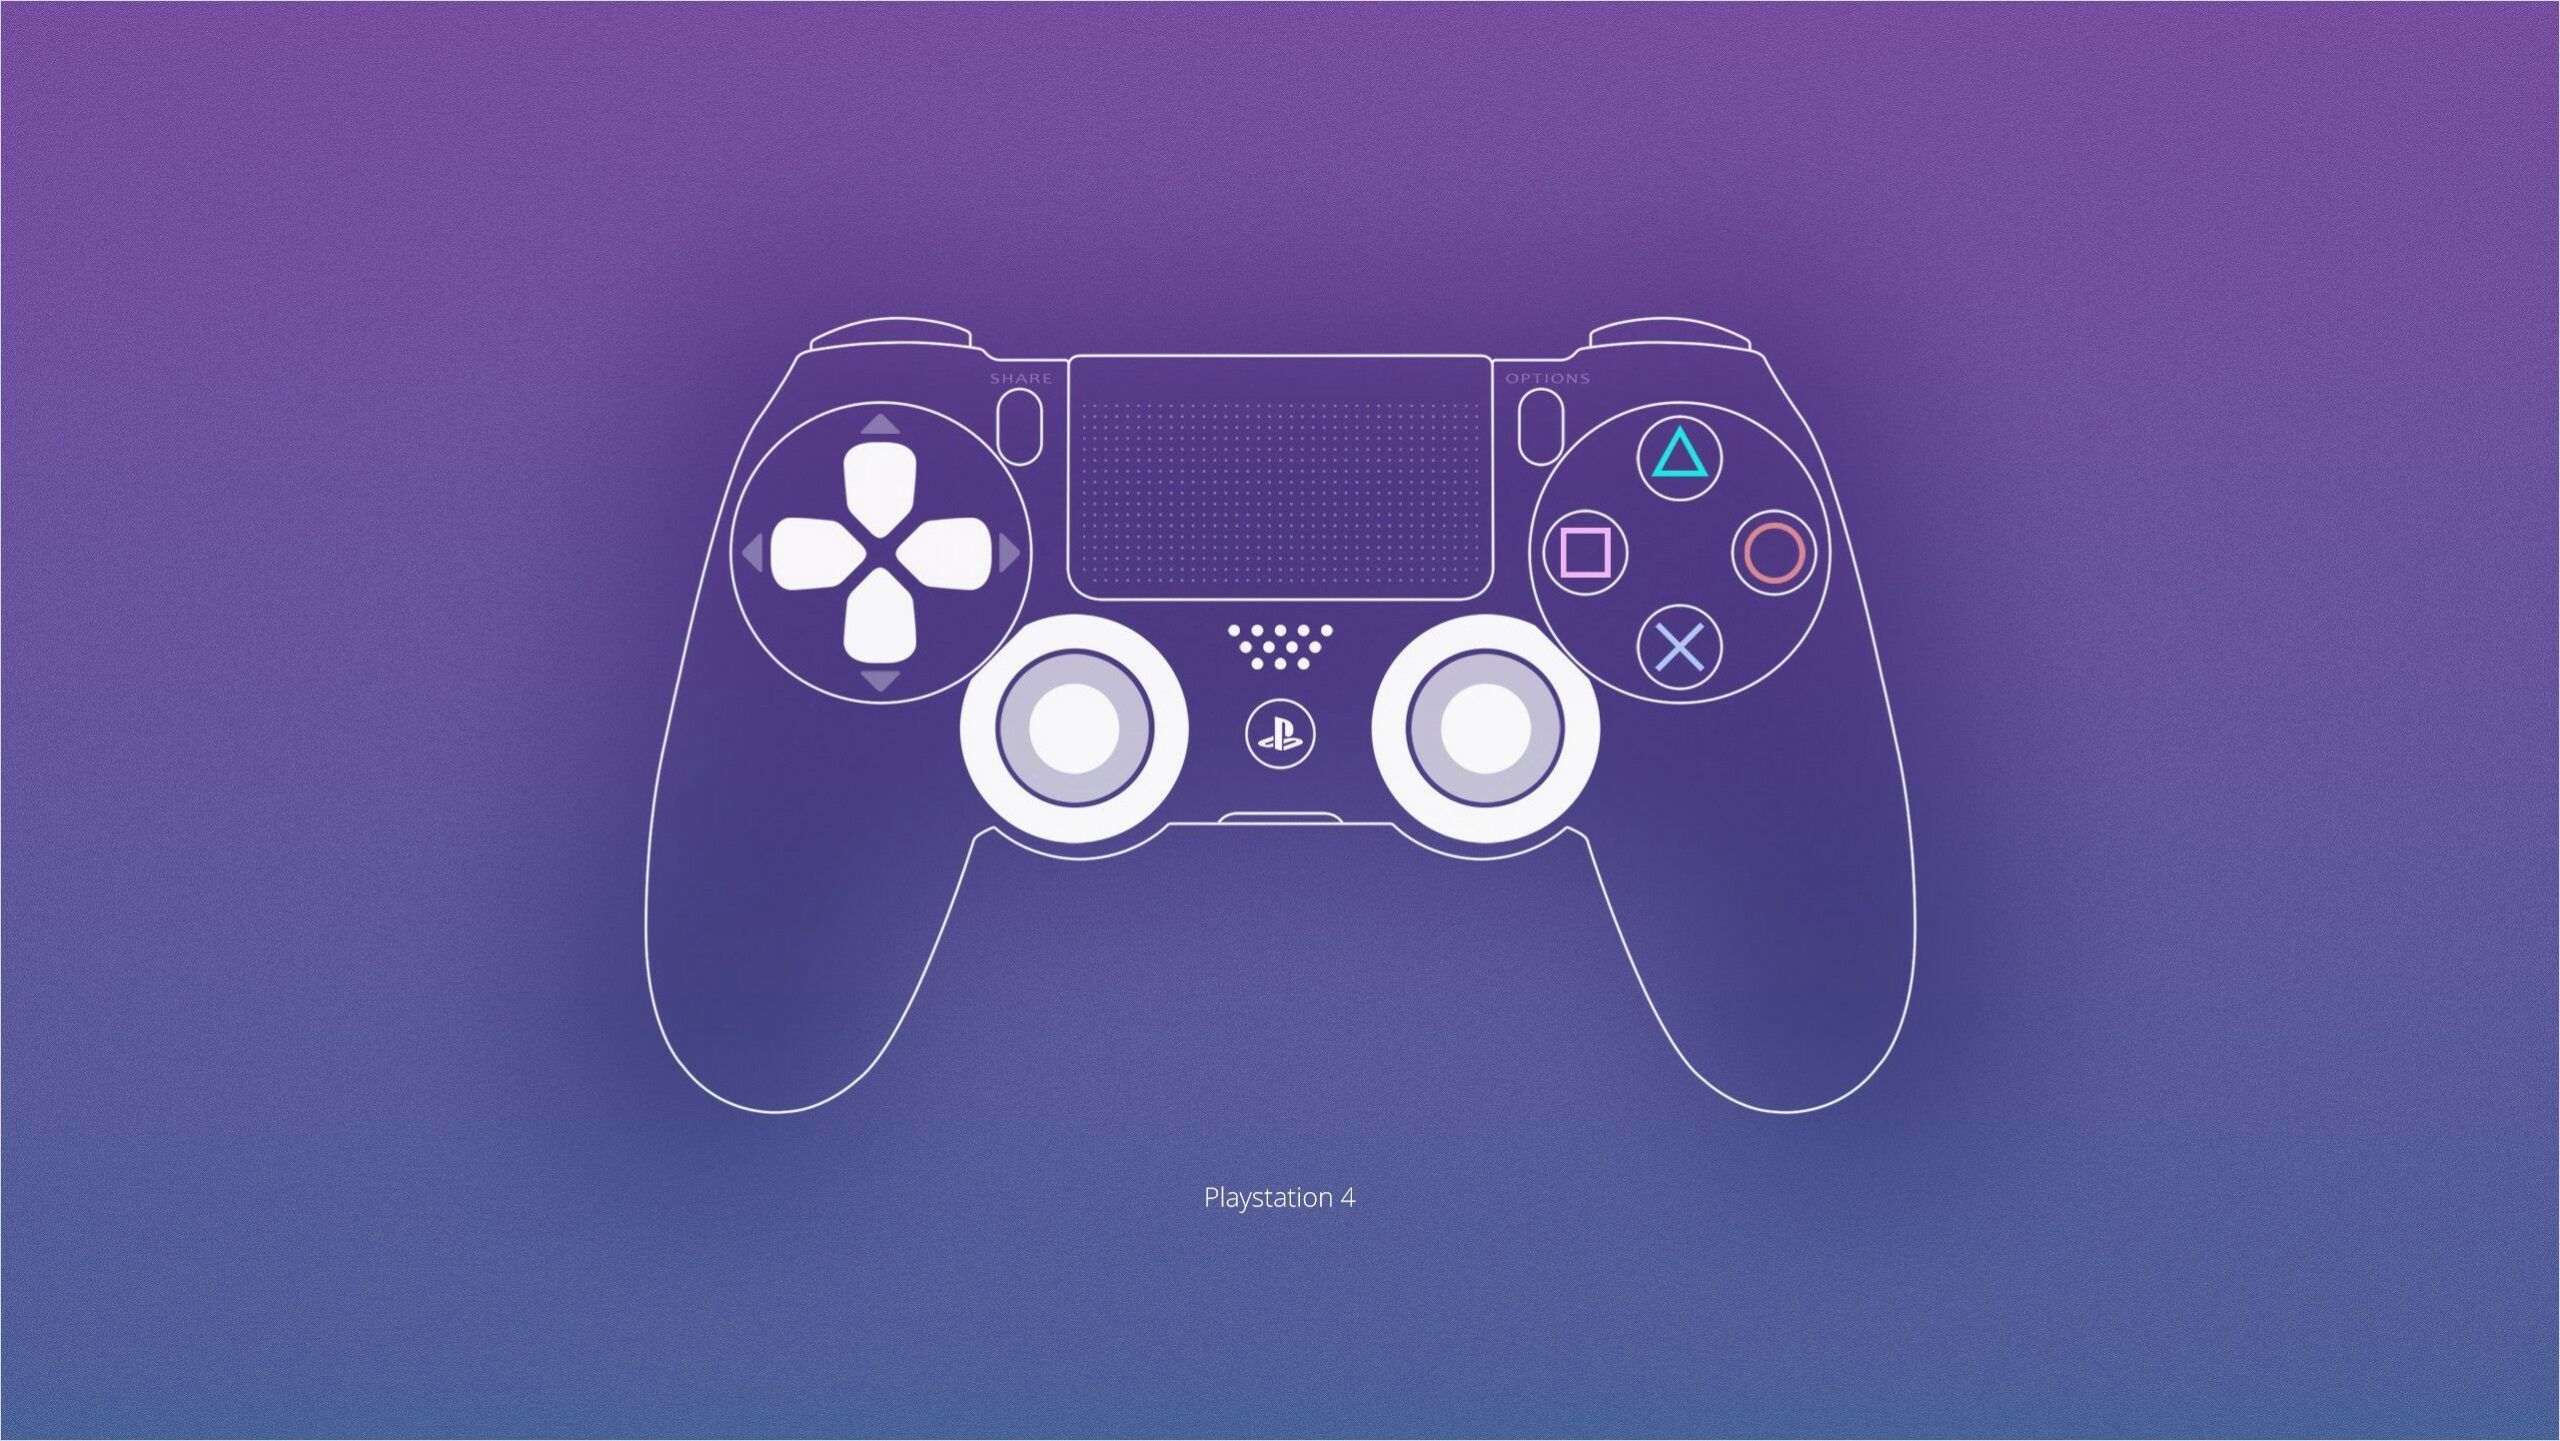 Ps4 Controller Wallpaper 4k In 2020 Ps4 Games Playstation Controller Video Game Controller